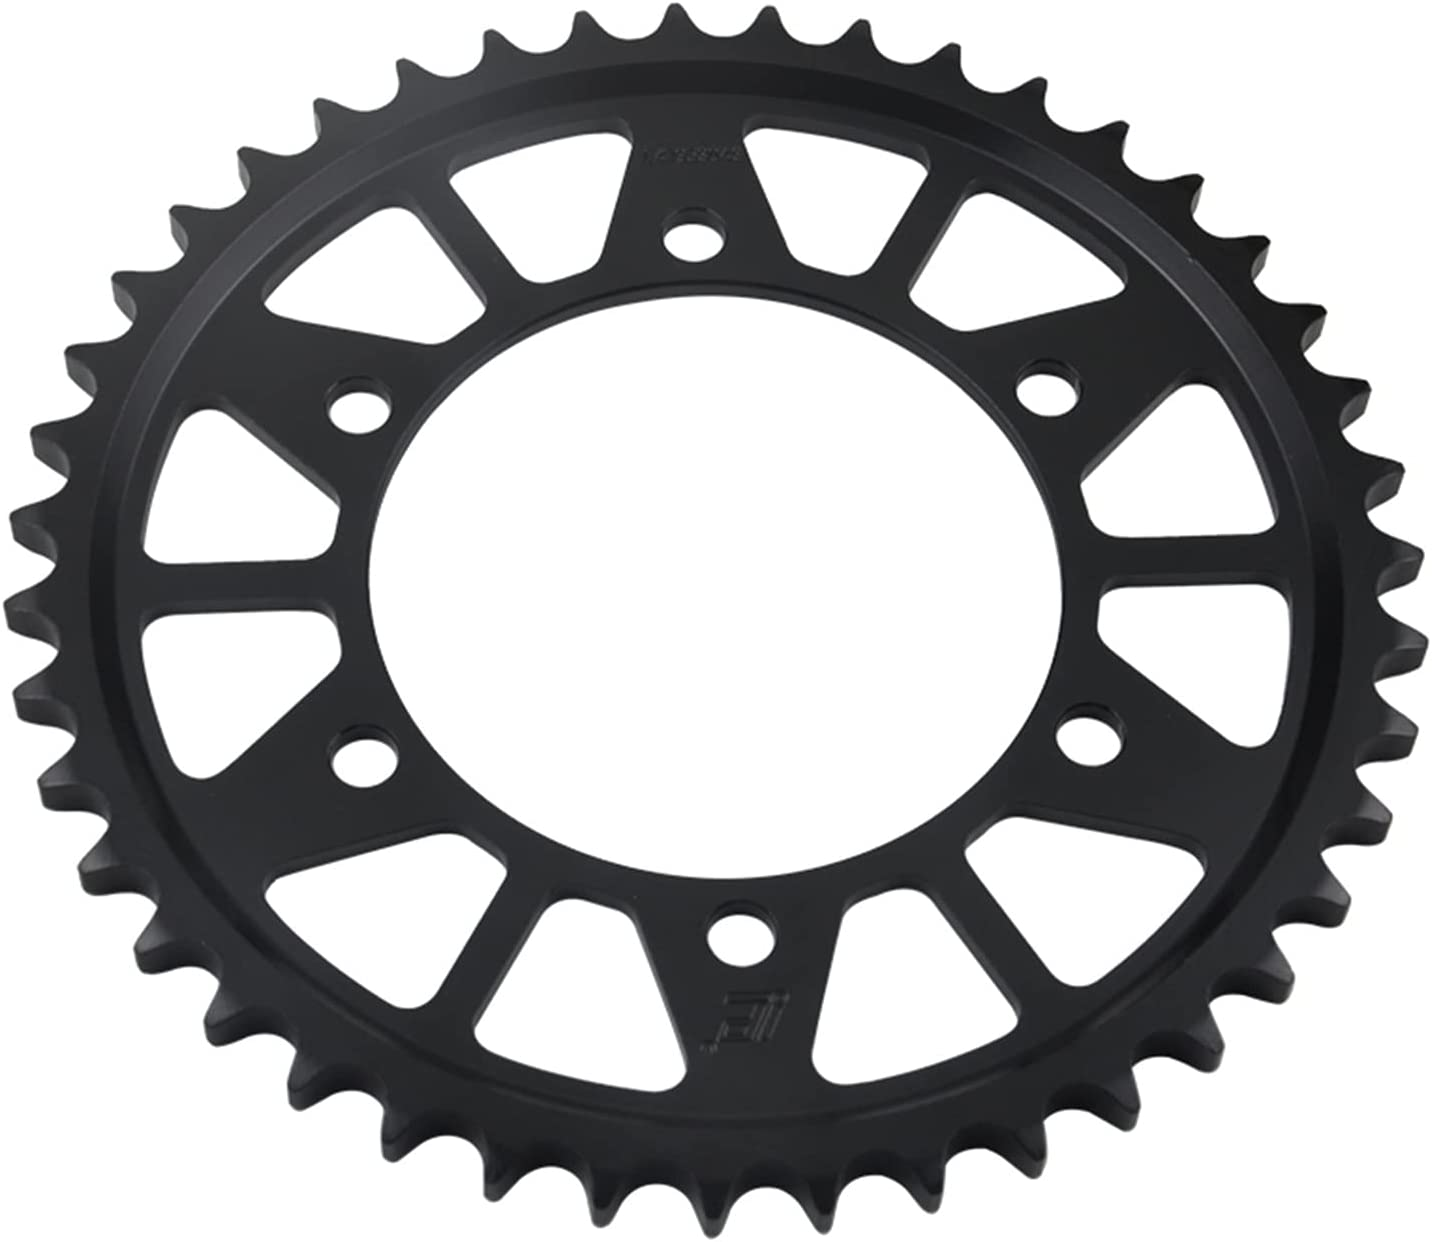 HDBH Steel Rear Sprocket 530 Chain Max 43% OFF Fort Worth Mall Suit Motorcycle